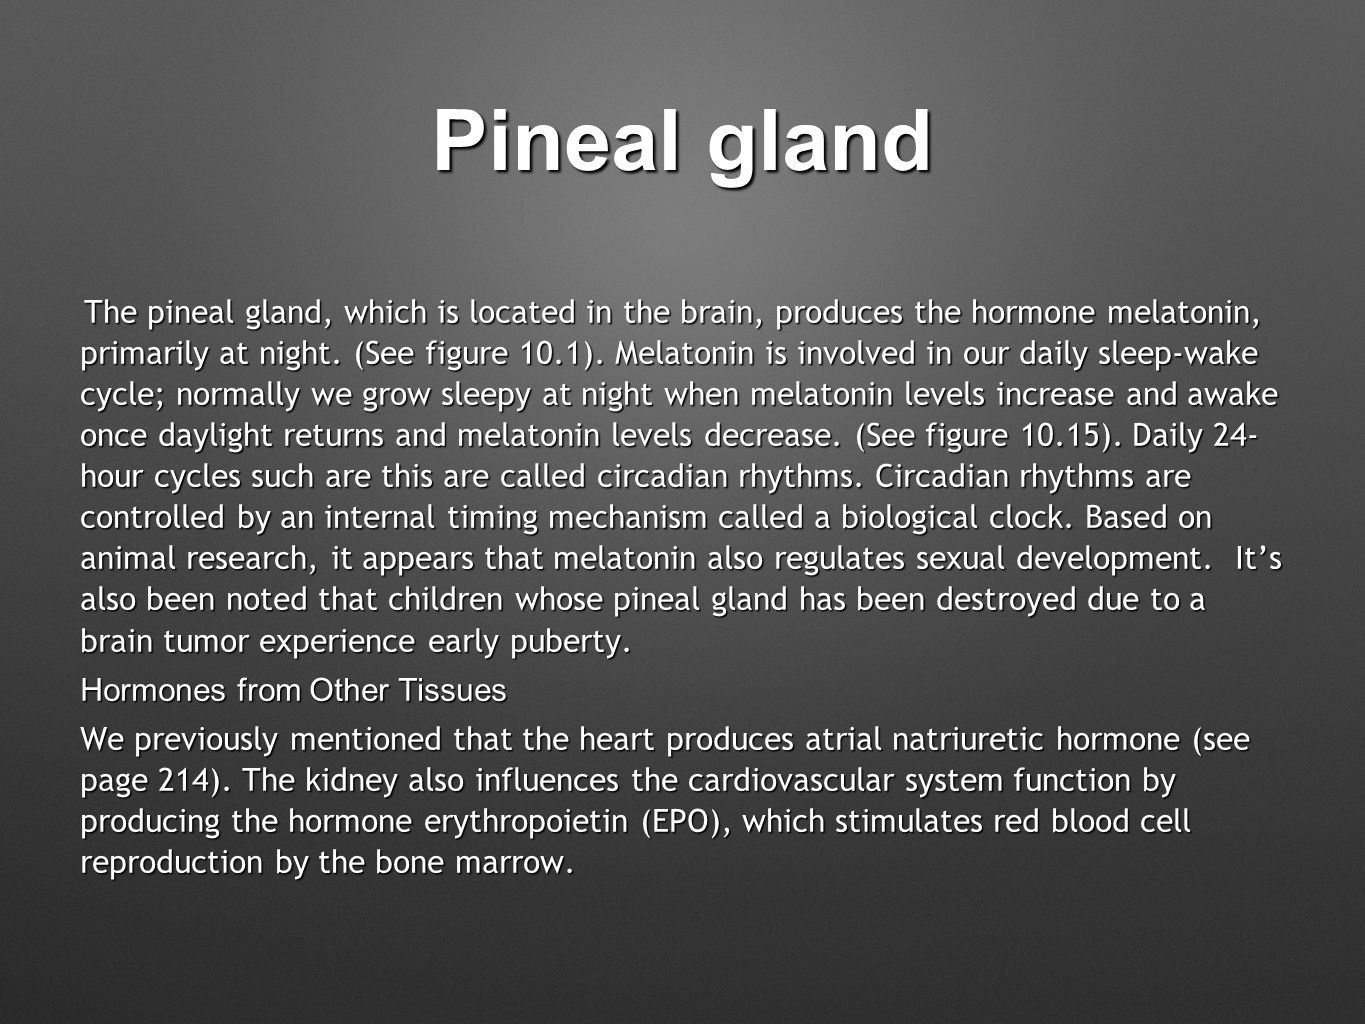 Pineal gland Hormones from Other Tissues